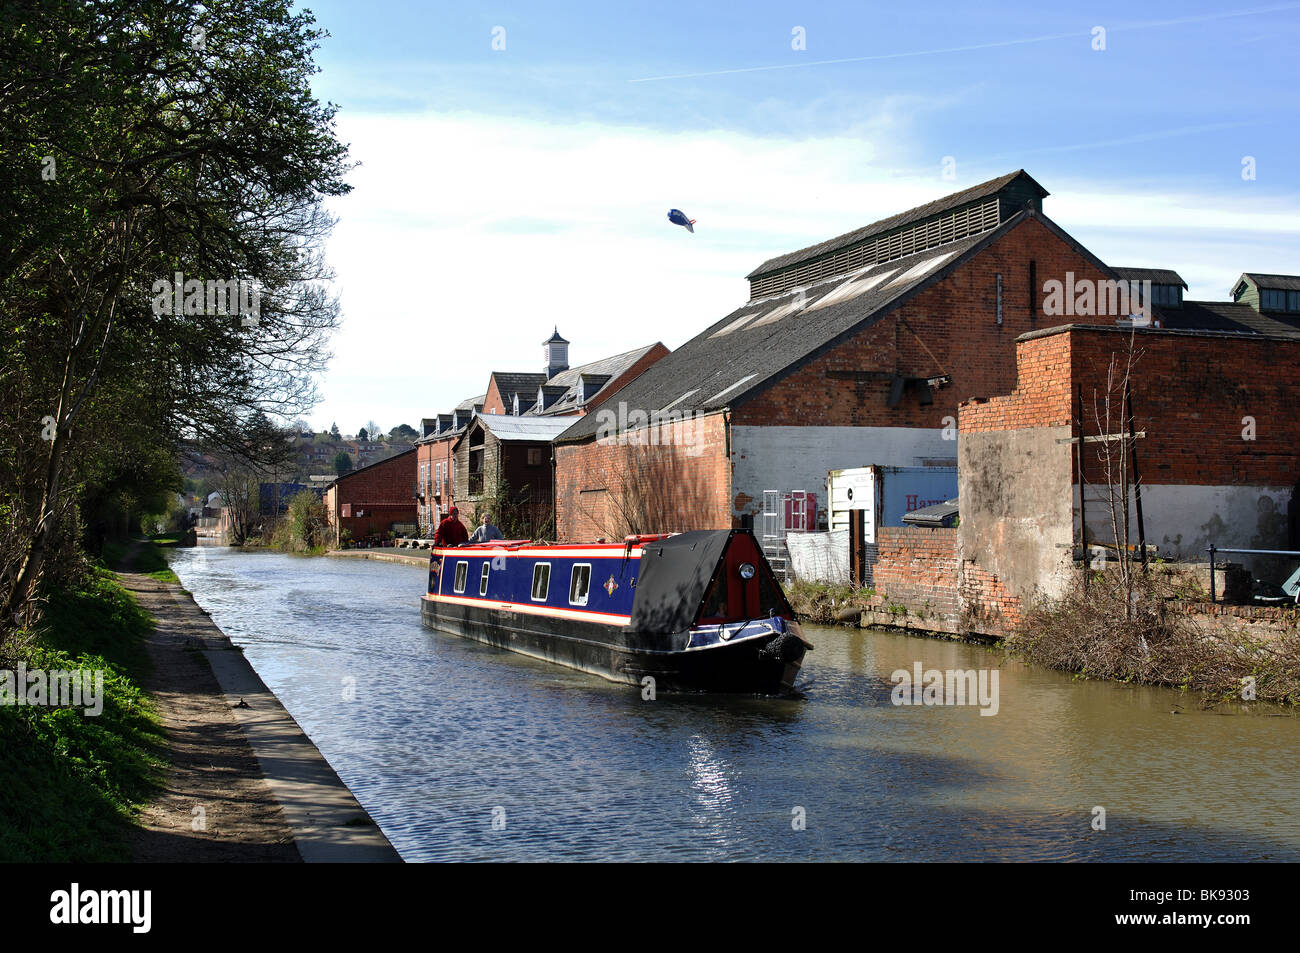 The Oxford Canal at Banbury, Oxfordshire, England, UK - Stock Image